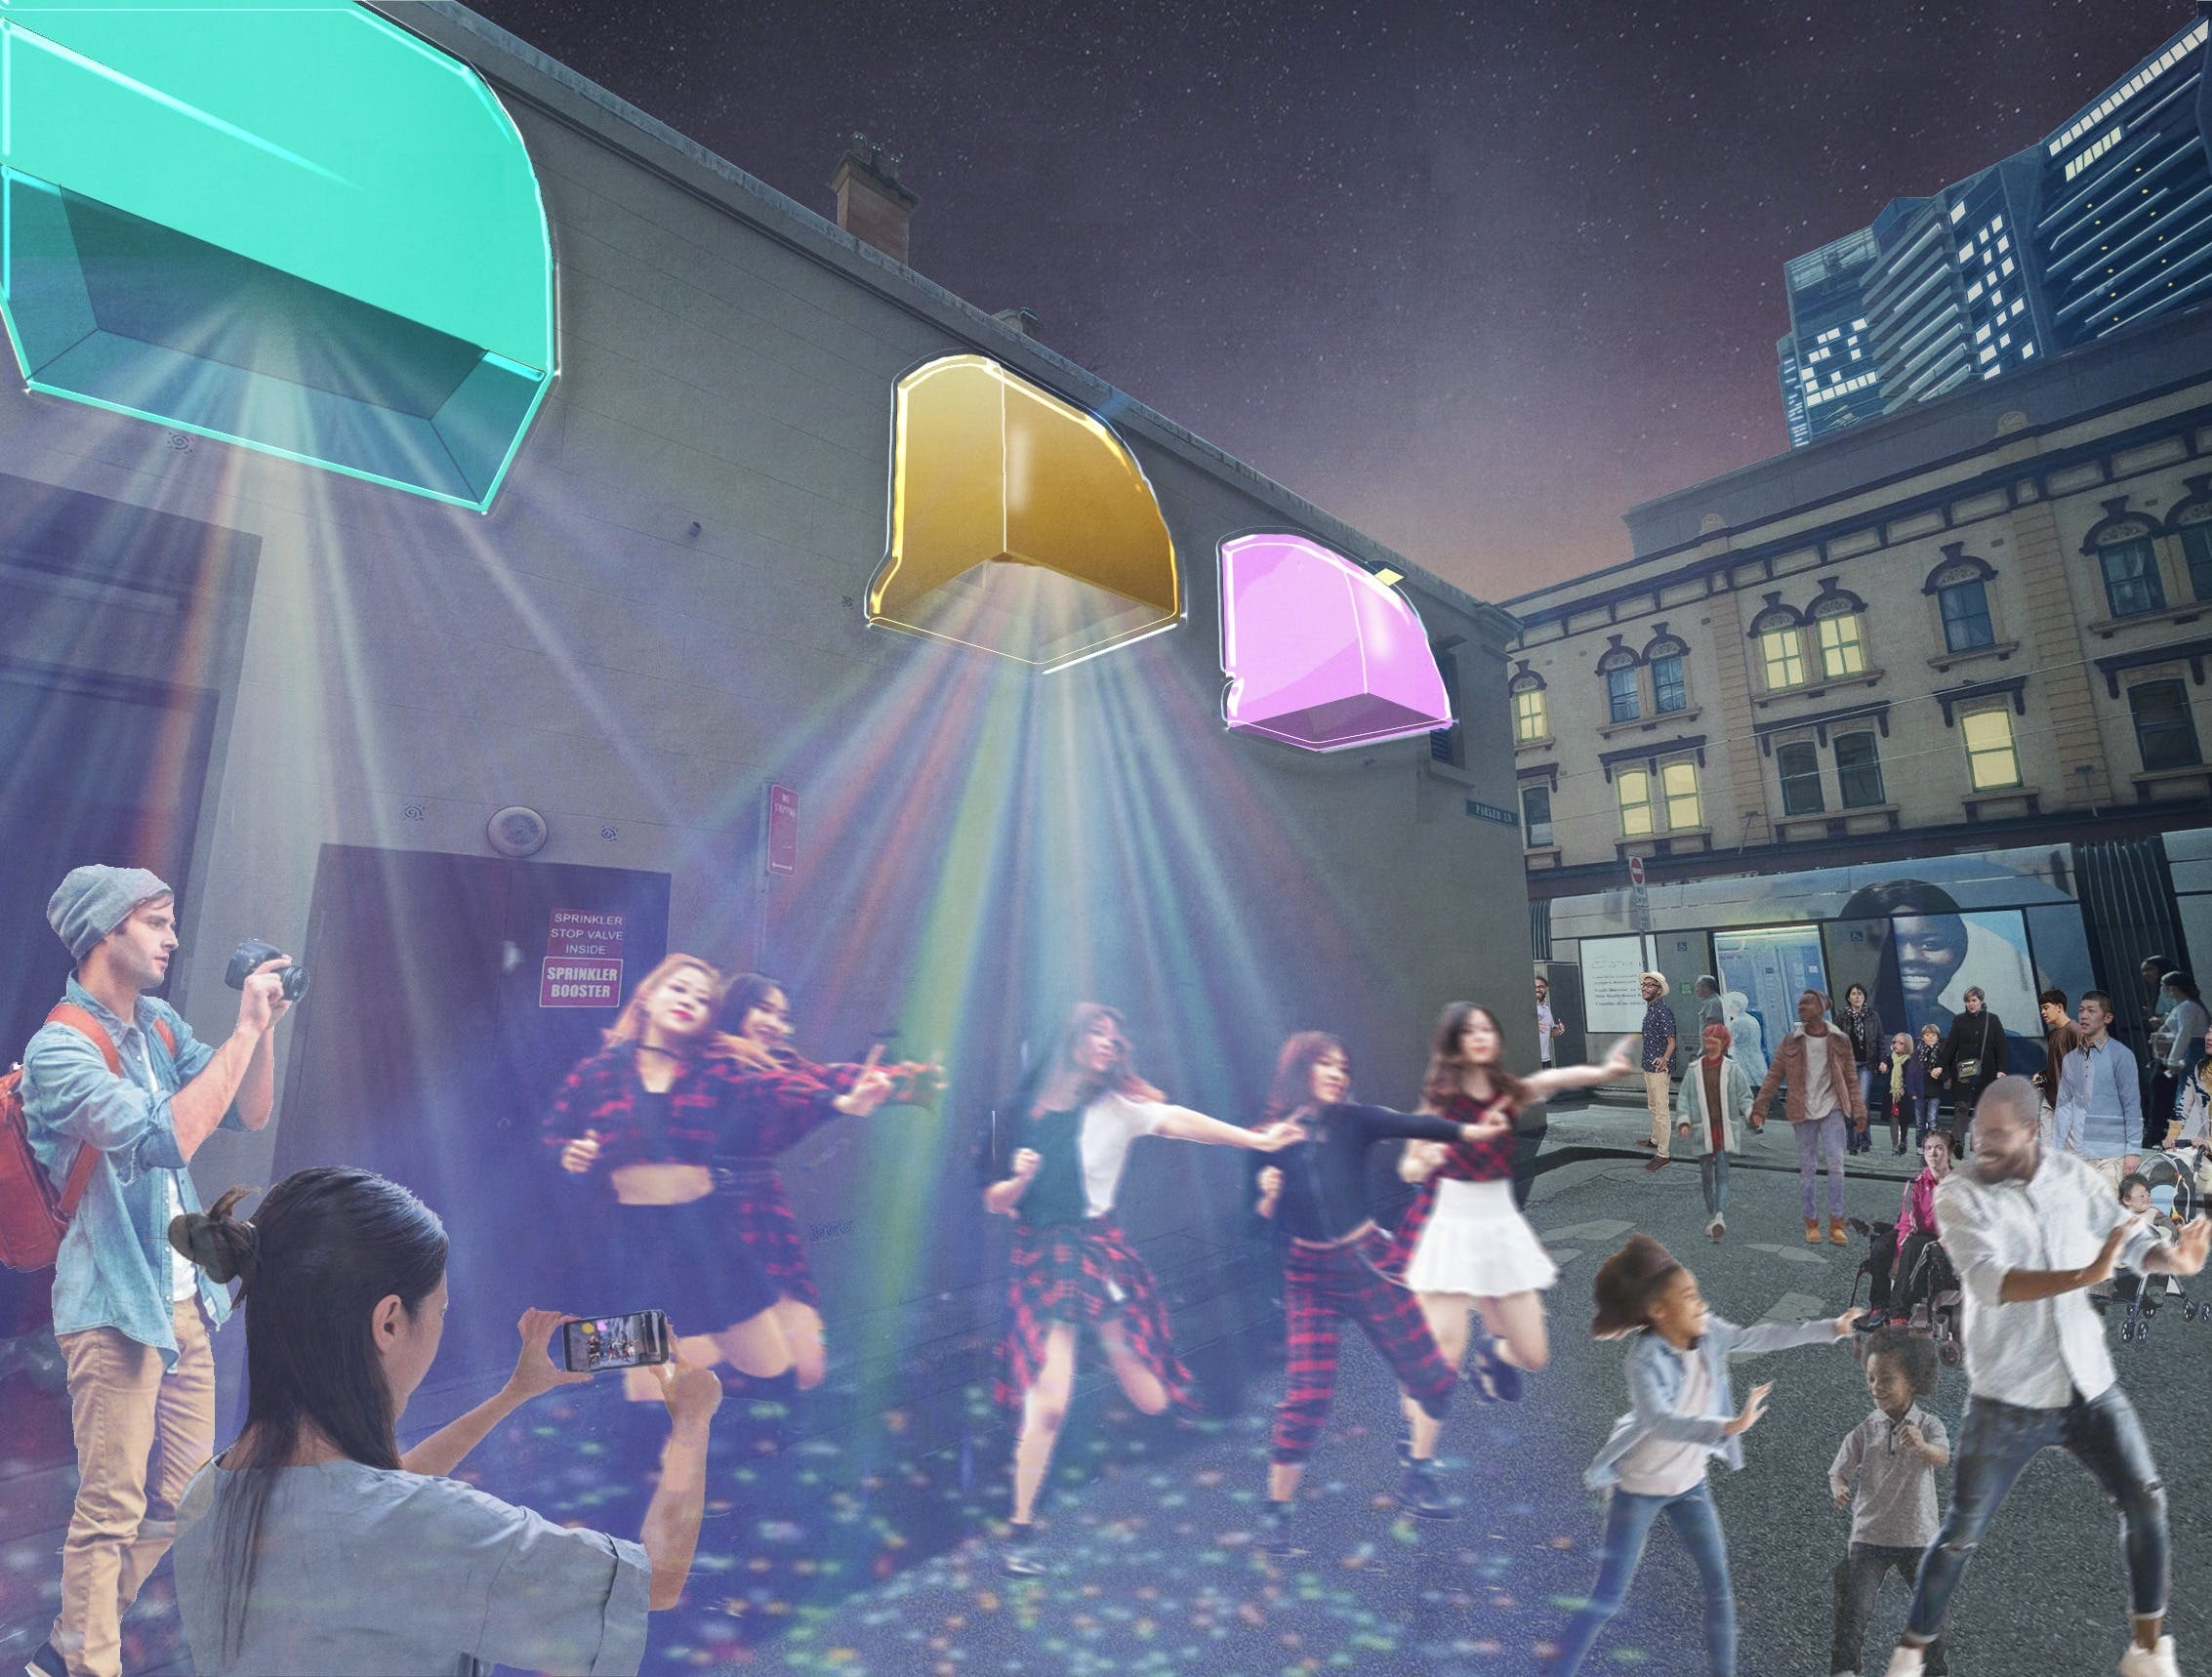 Artist rendering of people dancing at night under different coloured lights.